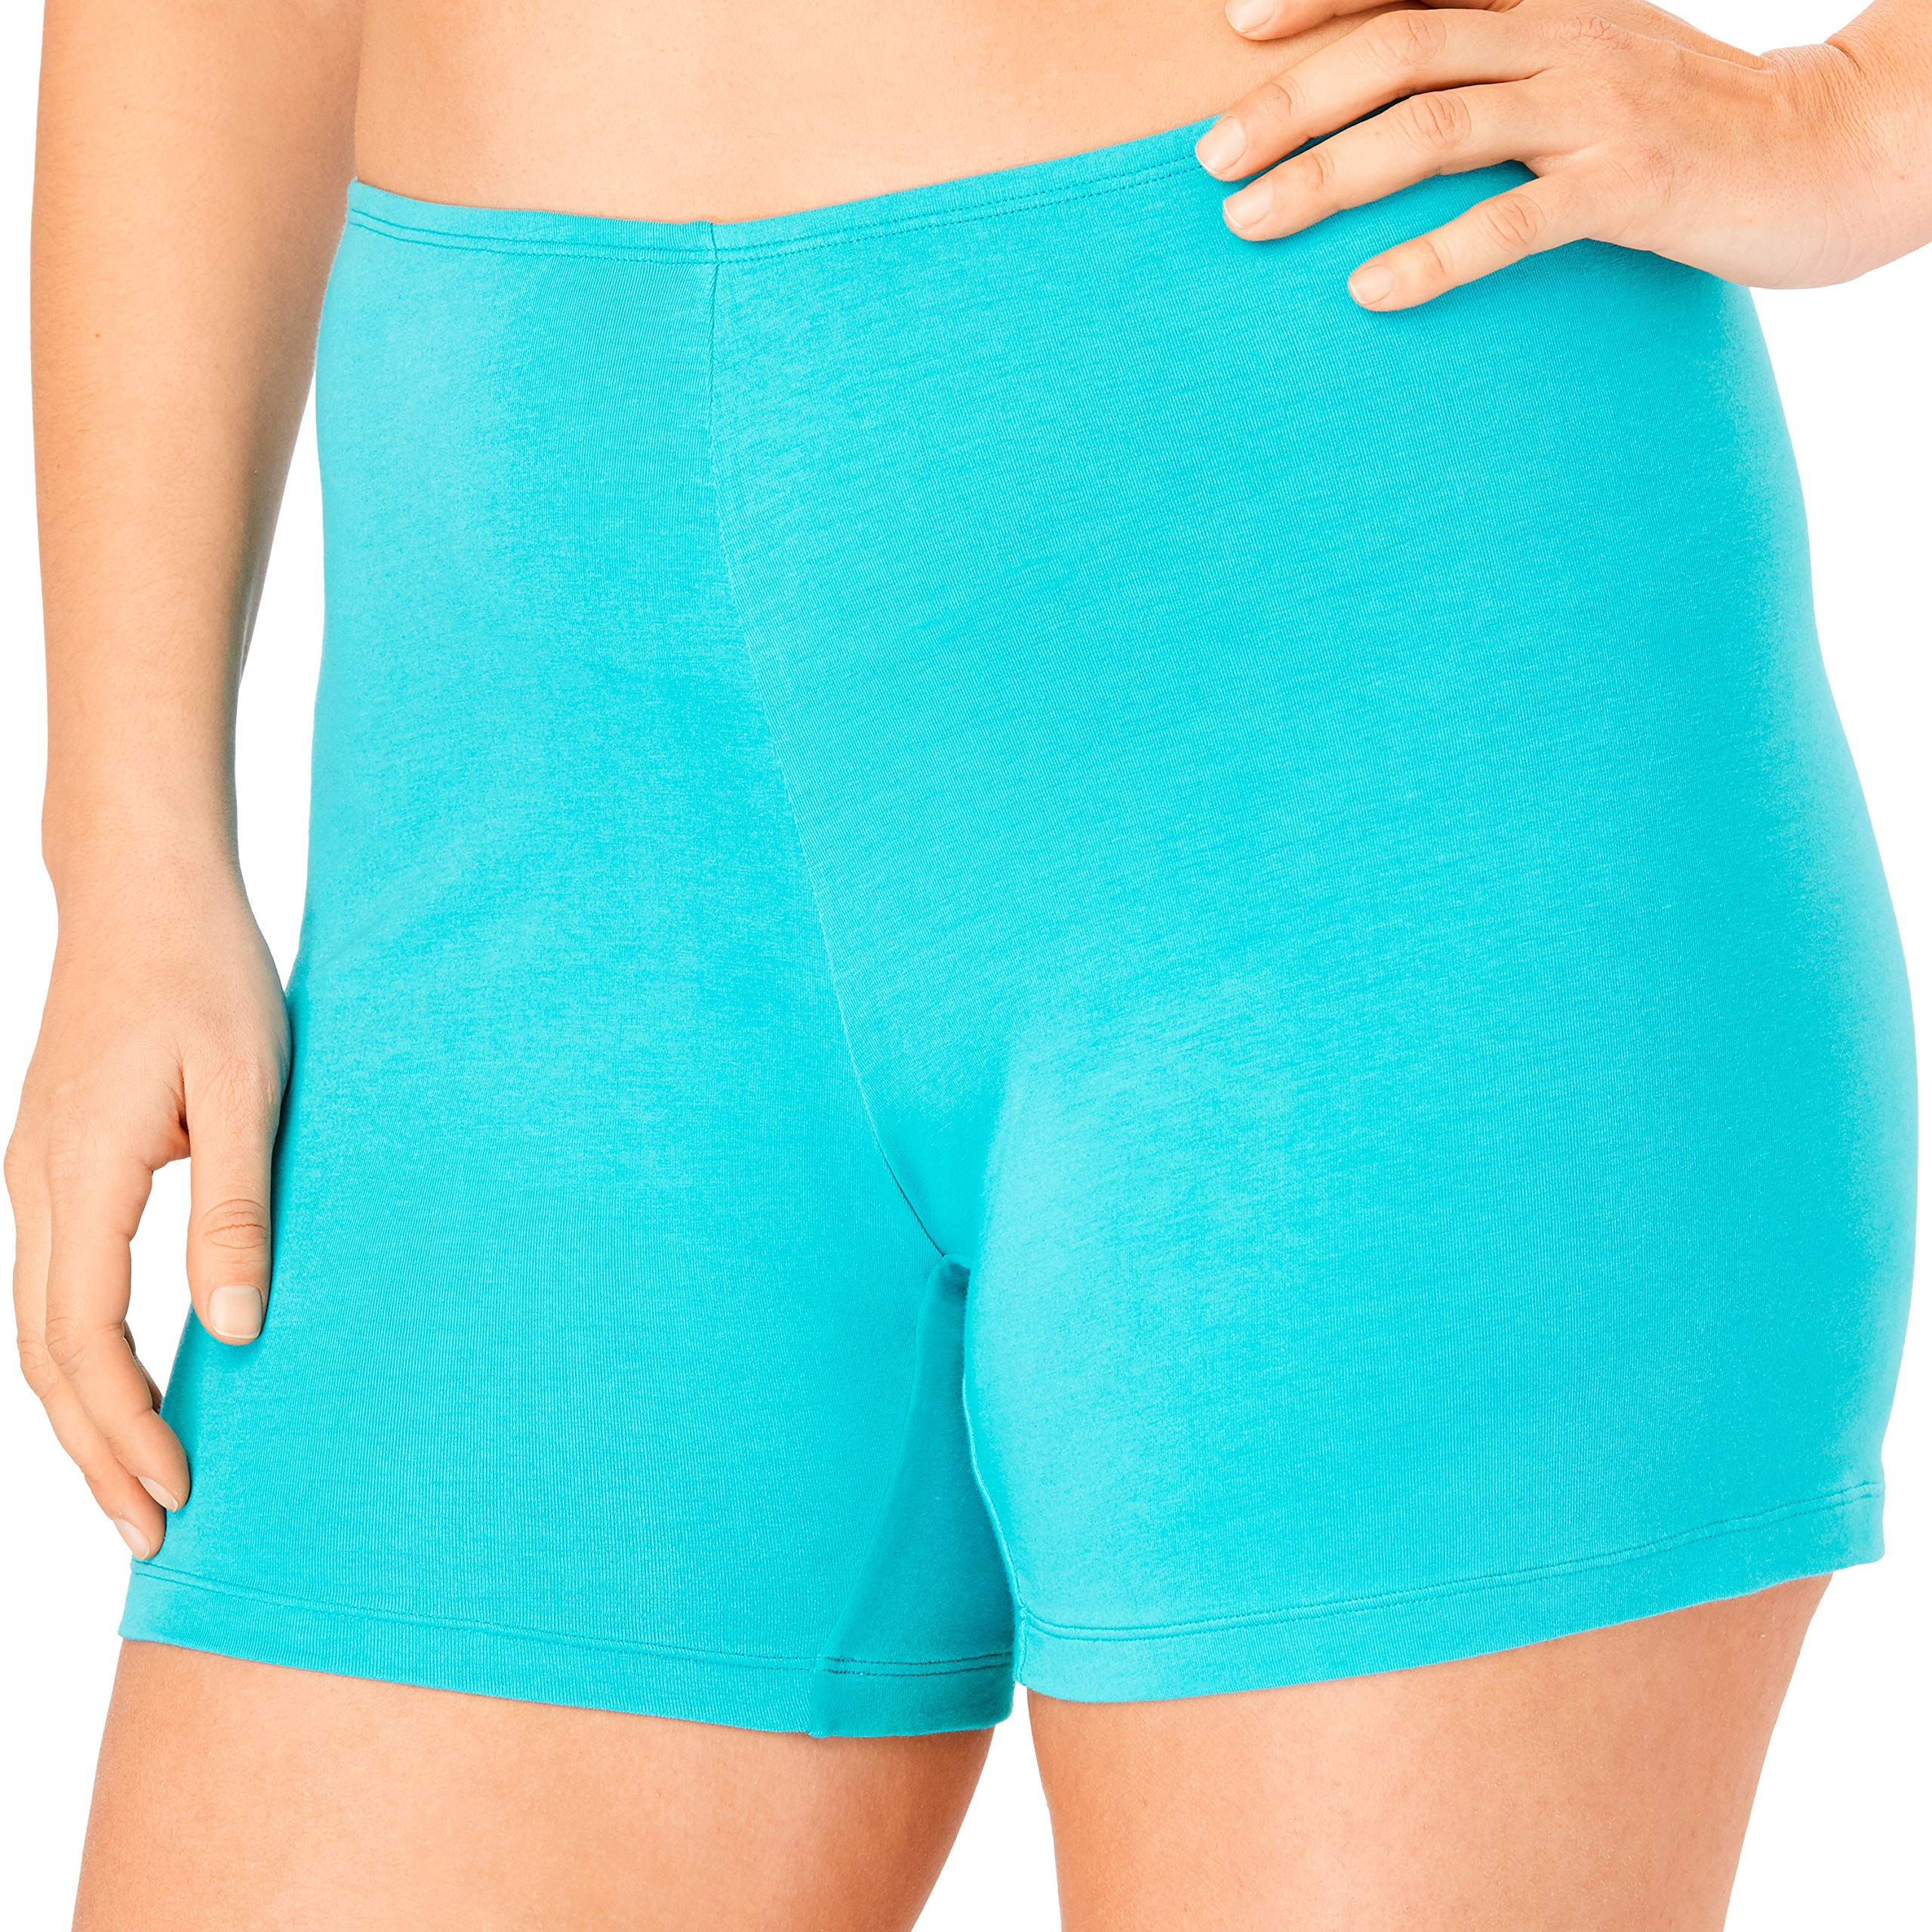 Comfort Choice Women's Plus Size 2-Pack Stretch Cotton Boxer Boyshort